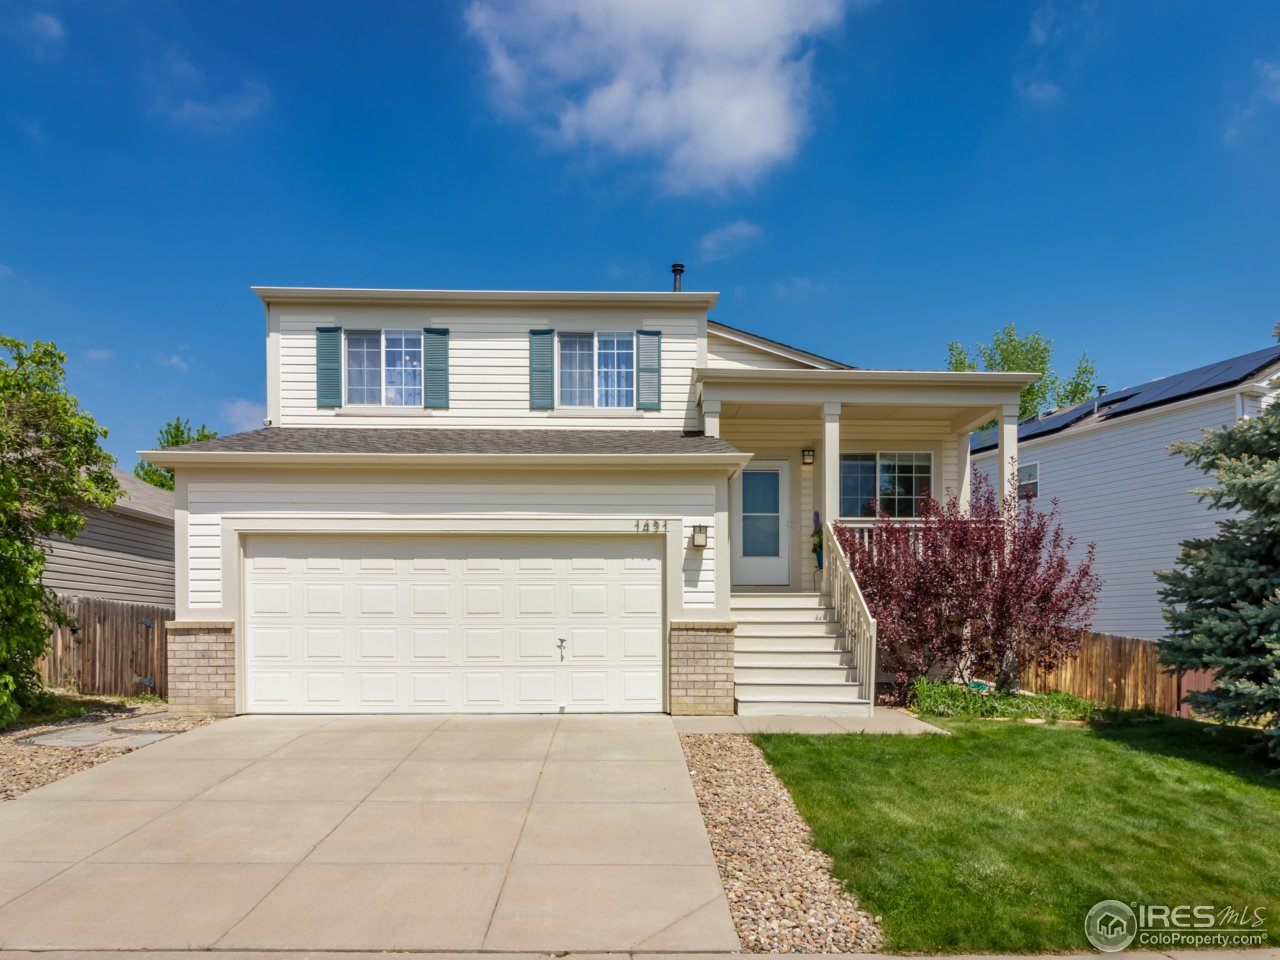 1451 Wildrose Dr, Longmont CO 80503